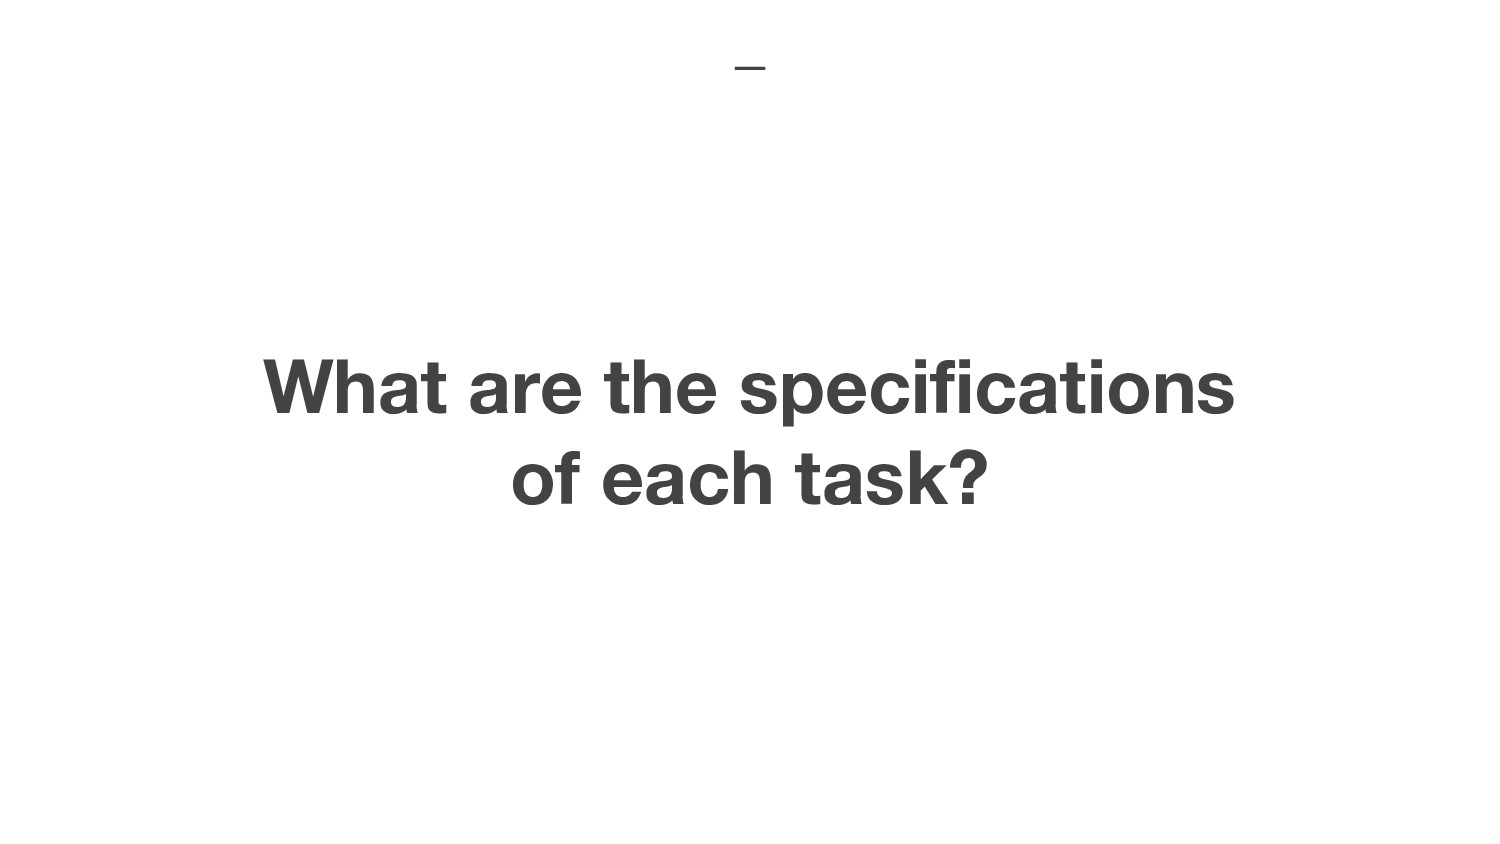 What are the specifications of each task?